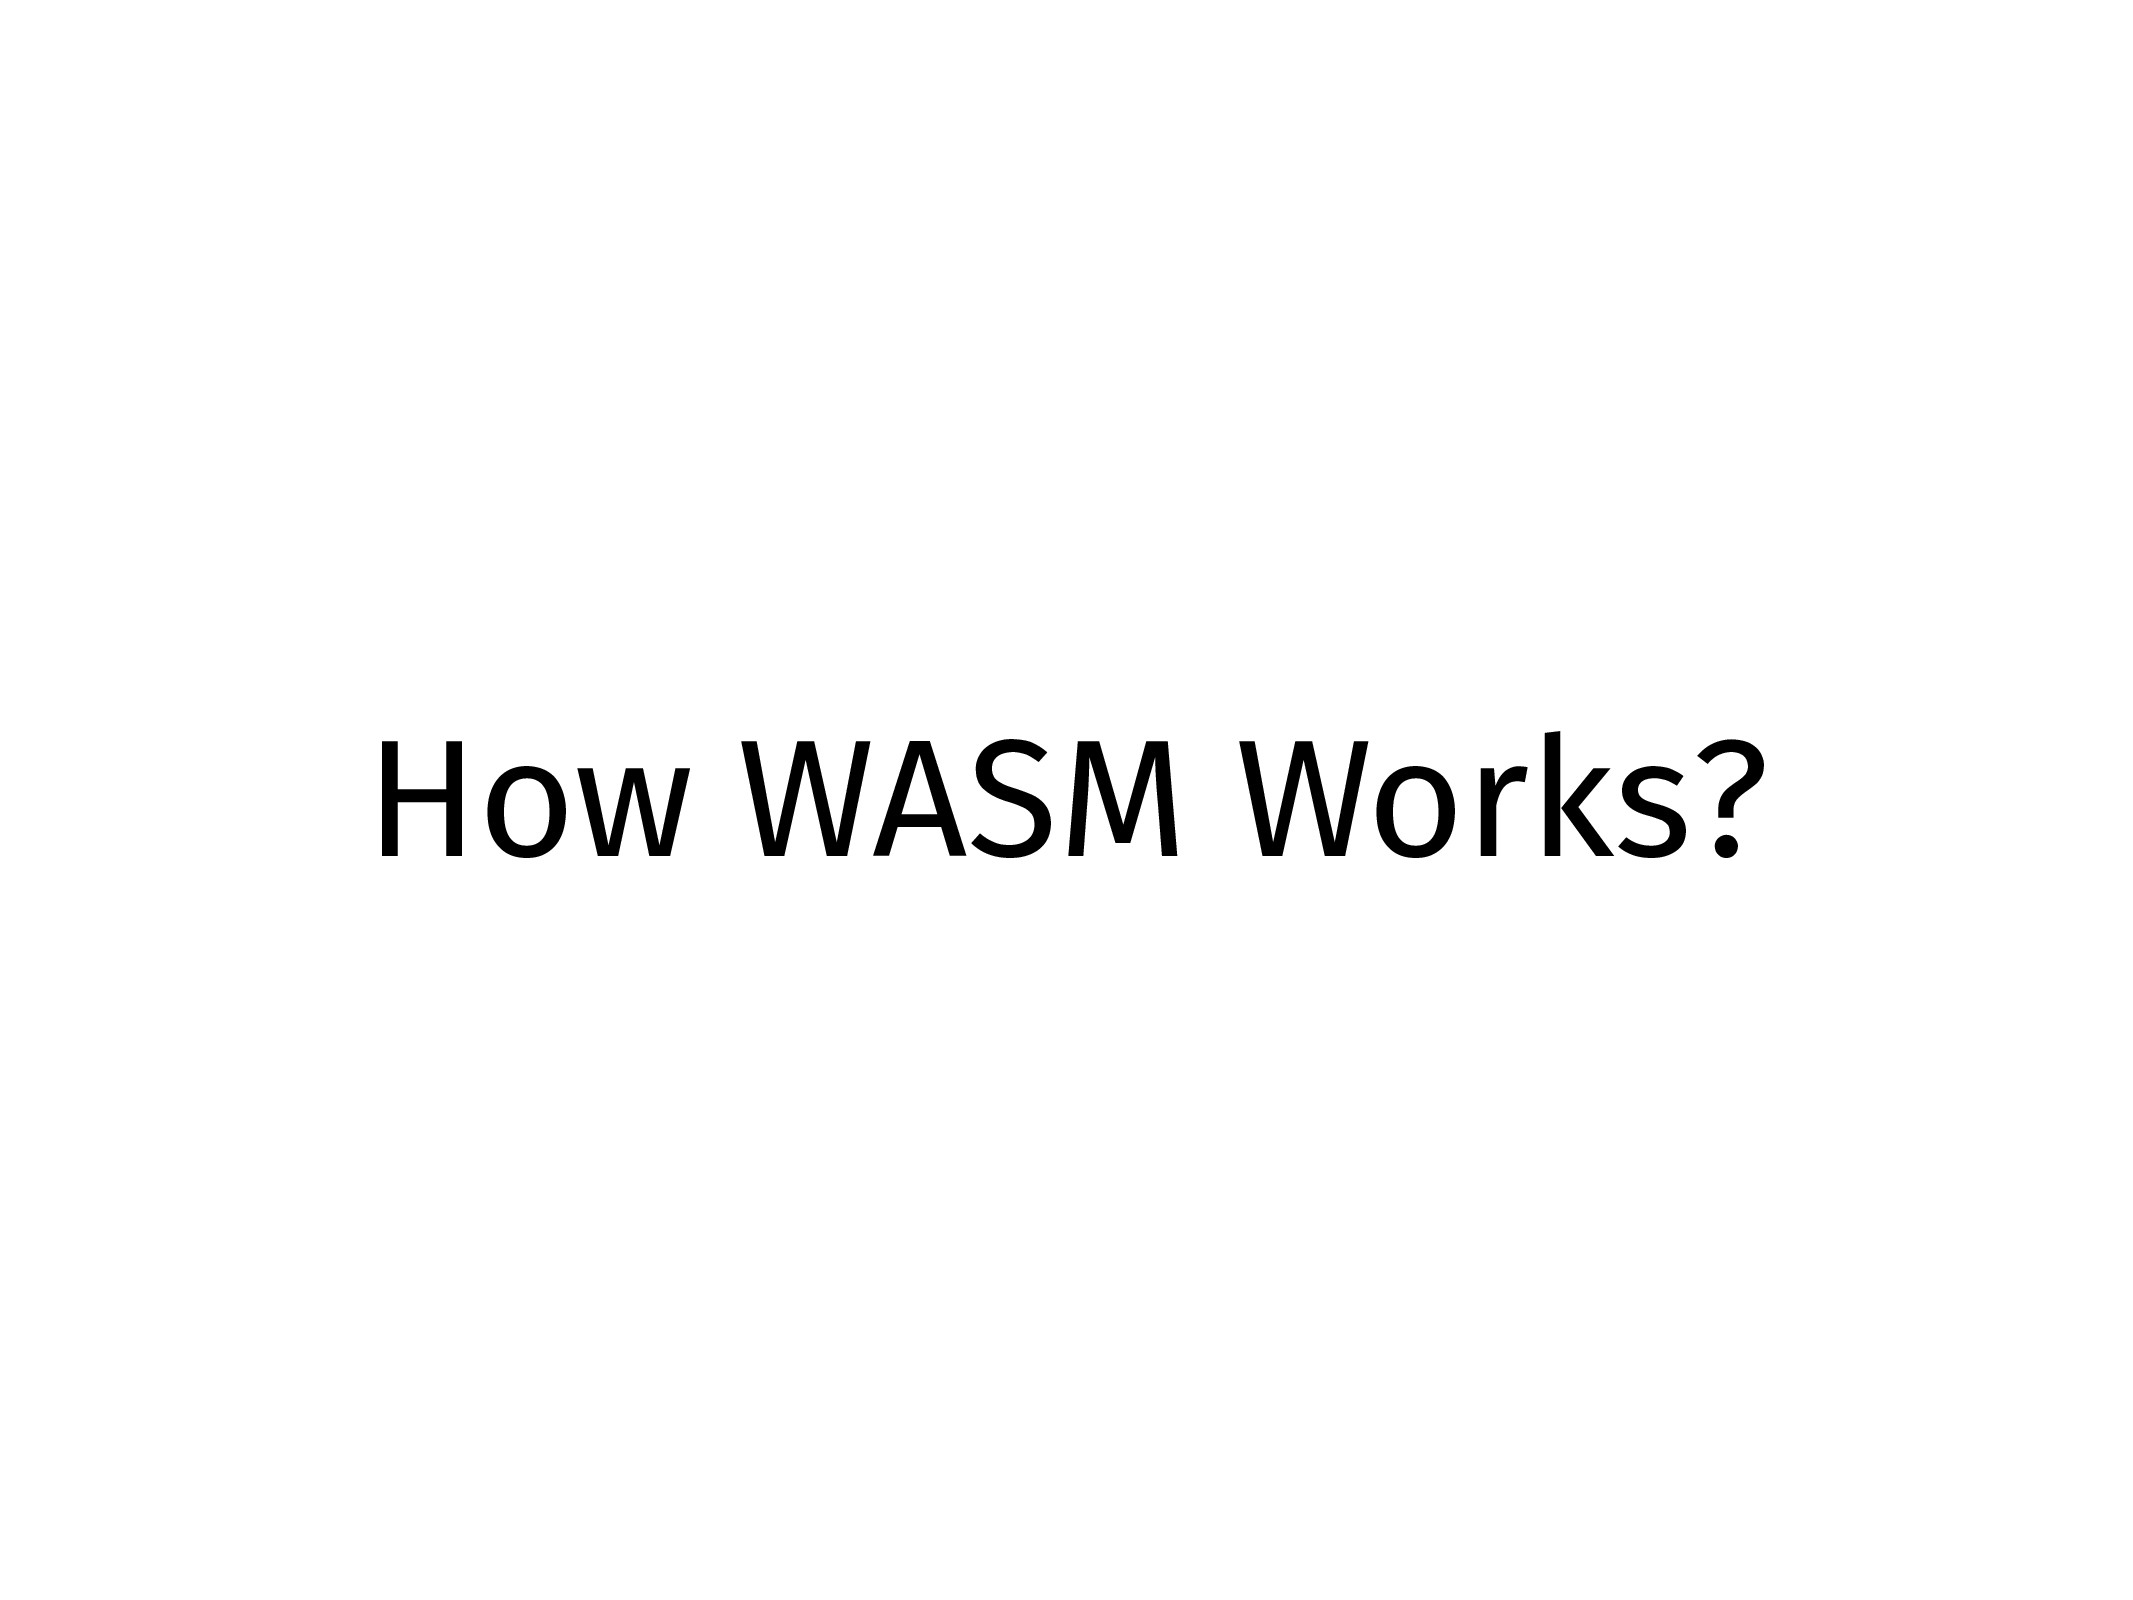 How WASM Works?